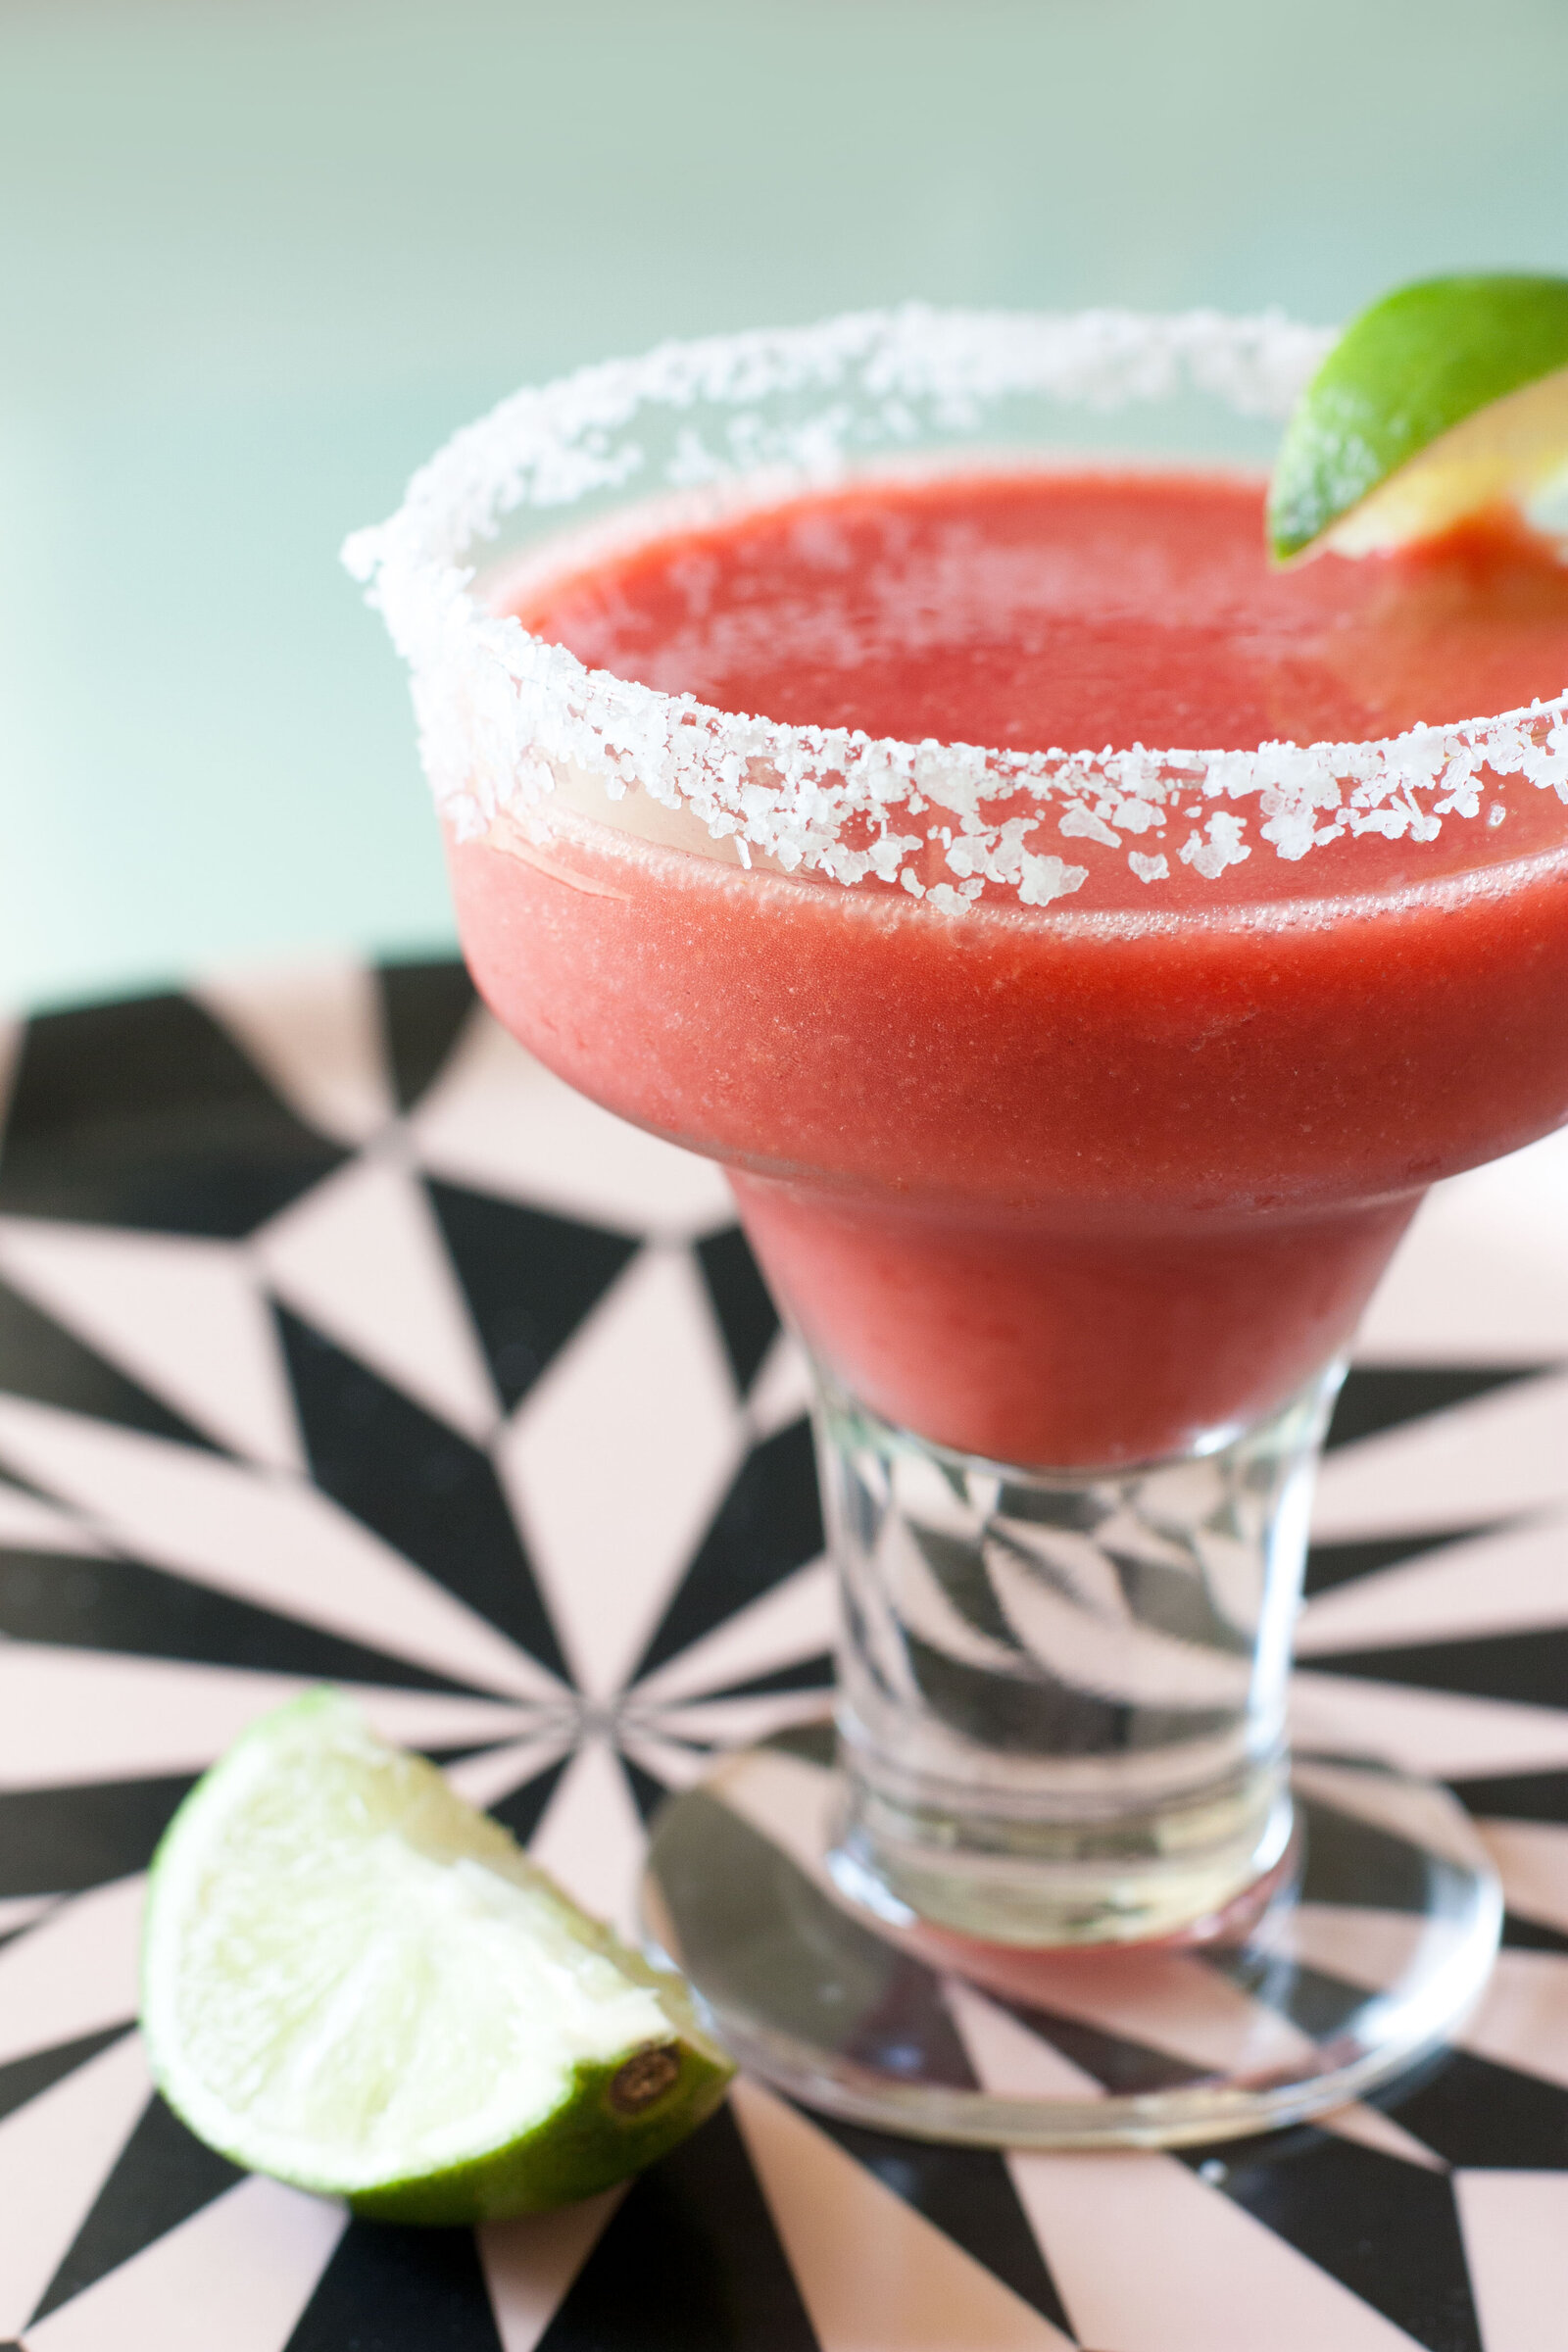 frozen-strawberry-margarita-recipe-thesarahjohnson-3 (1) copy